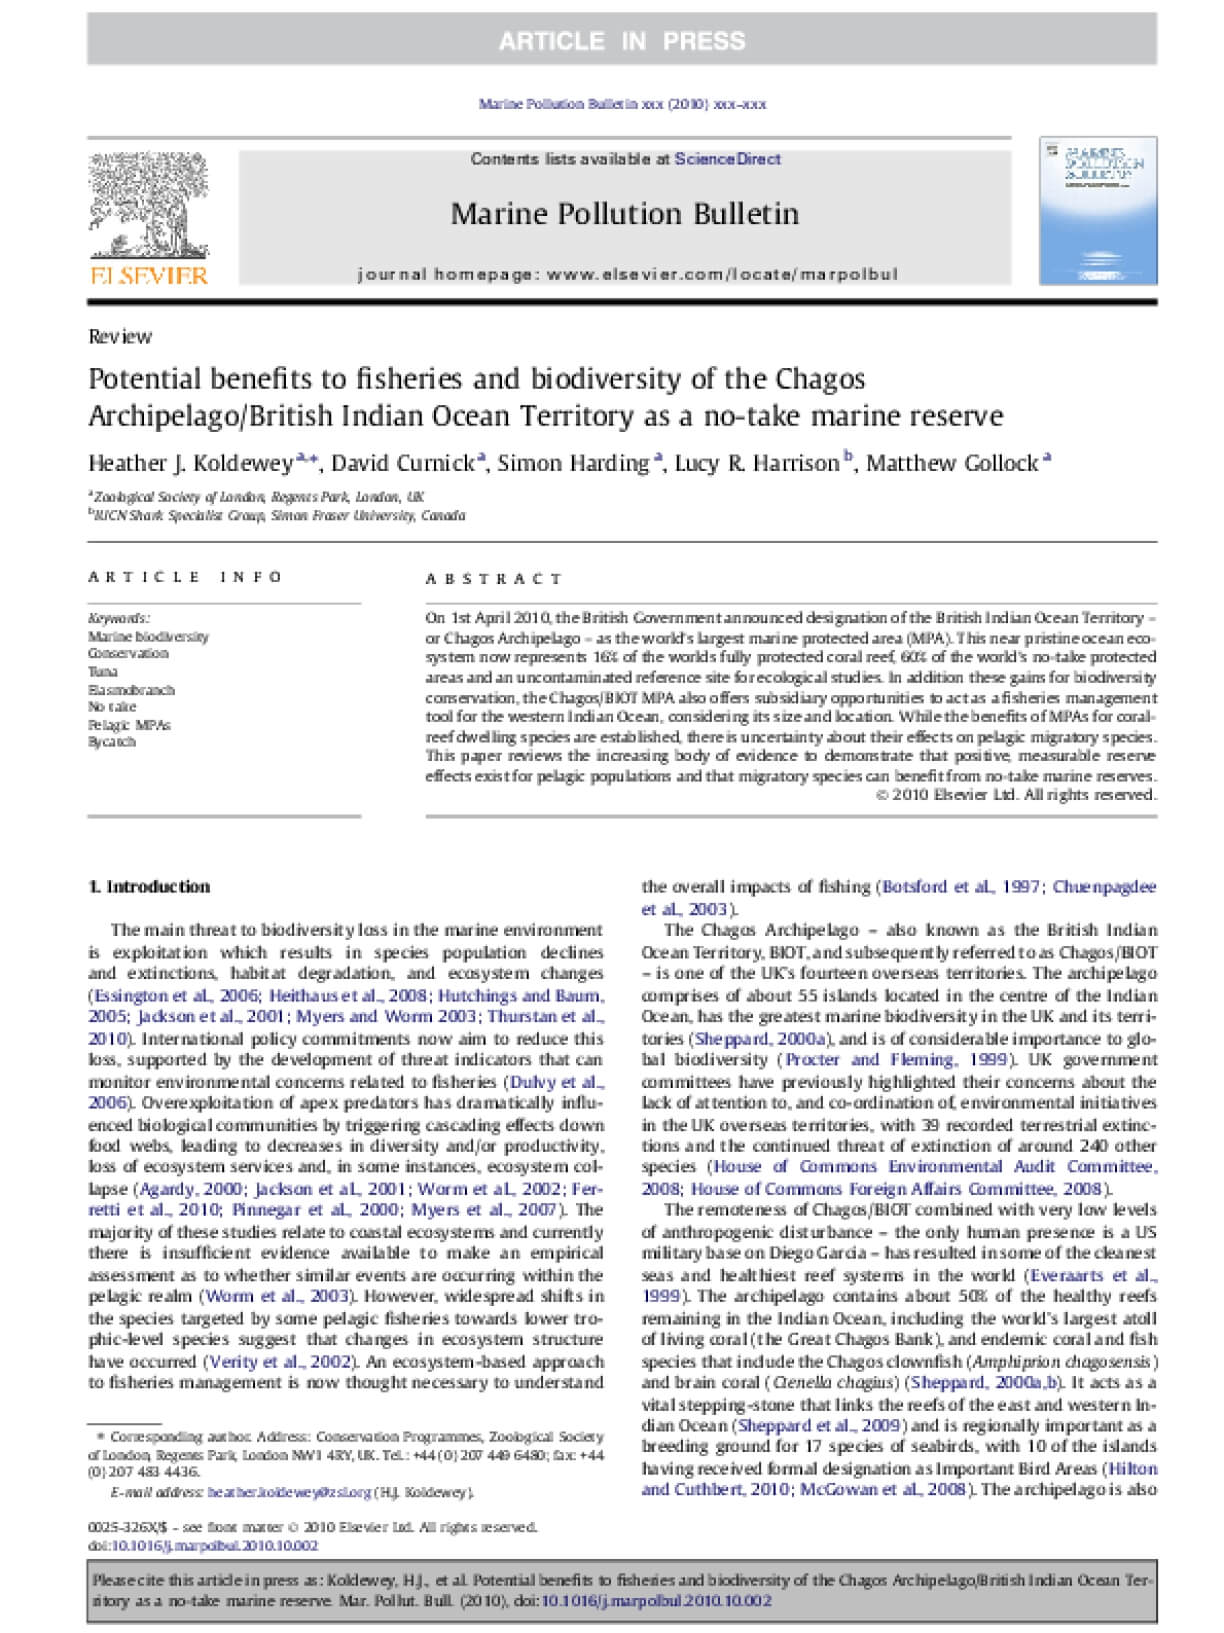 Potential Benefits to Fisheries and Biodiversity of the Chagos Archipelago Territory as a No-Take Marine Reserve